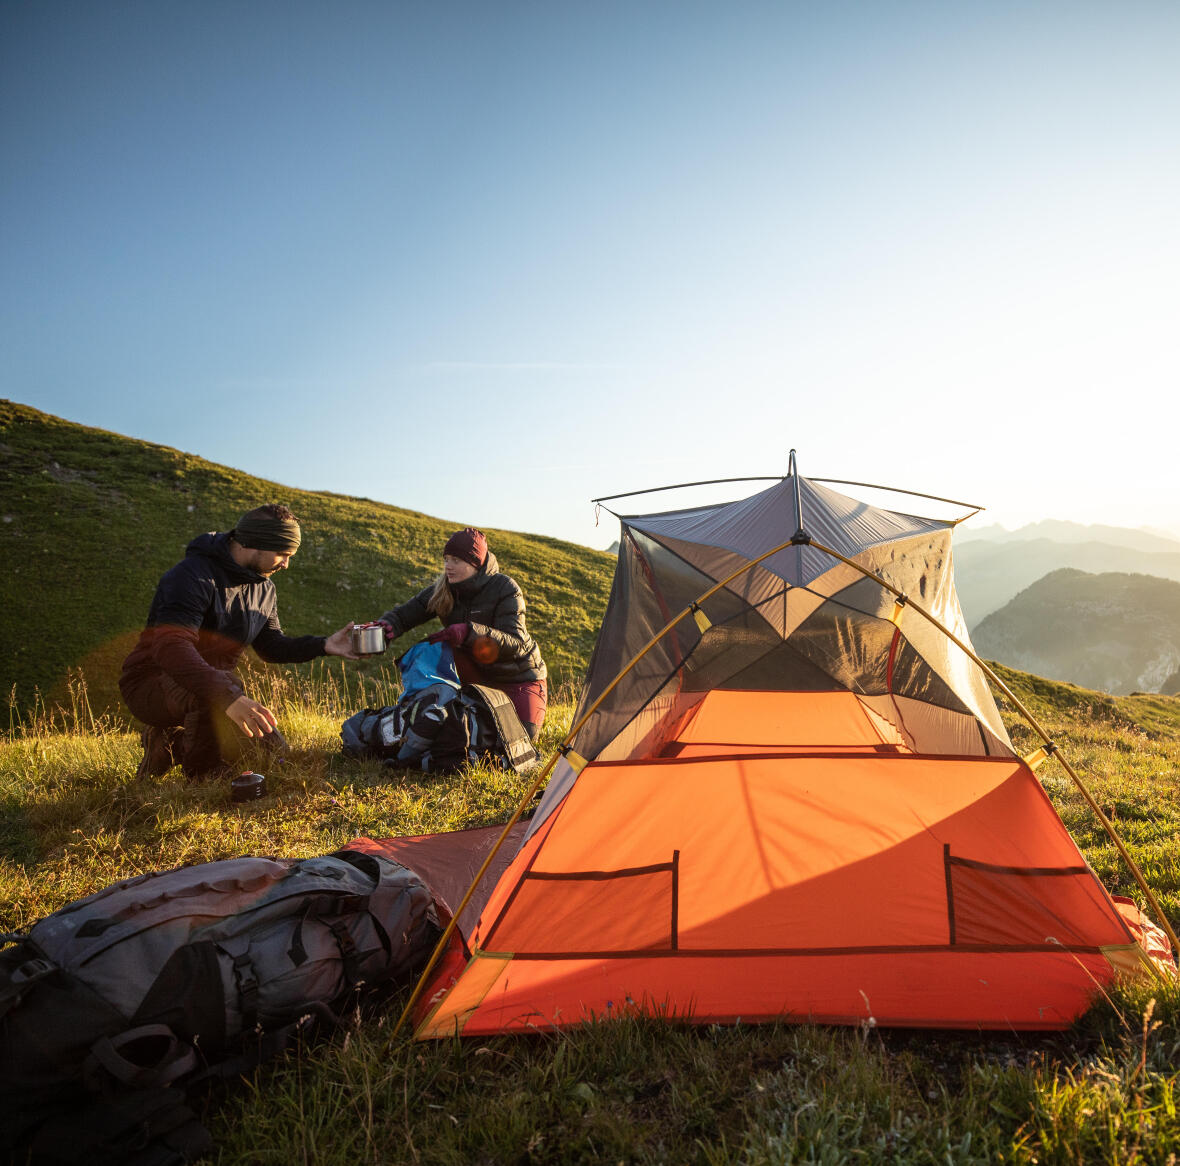 How to prevent condensation in tents?